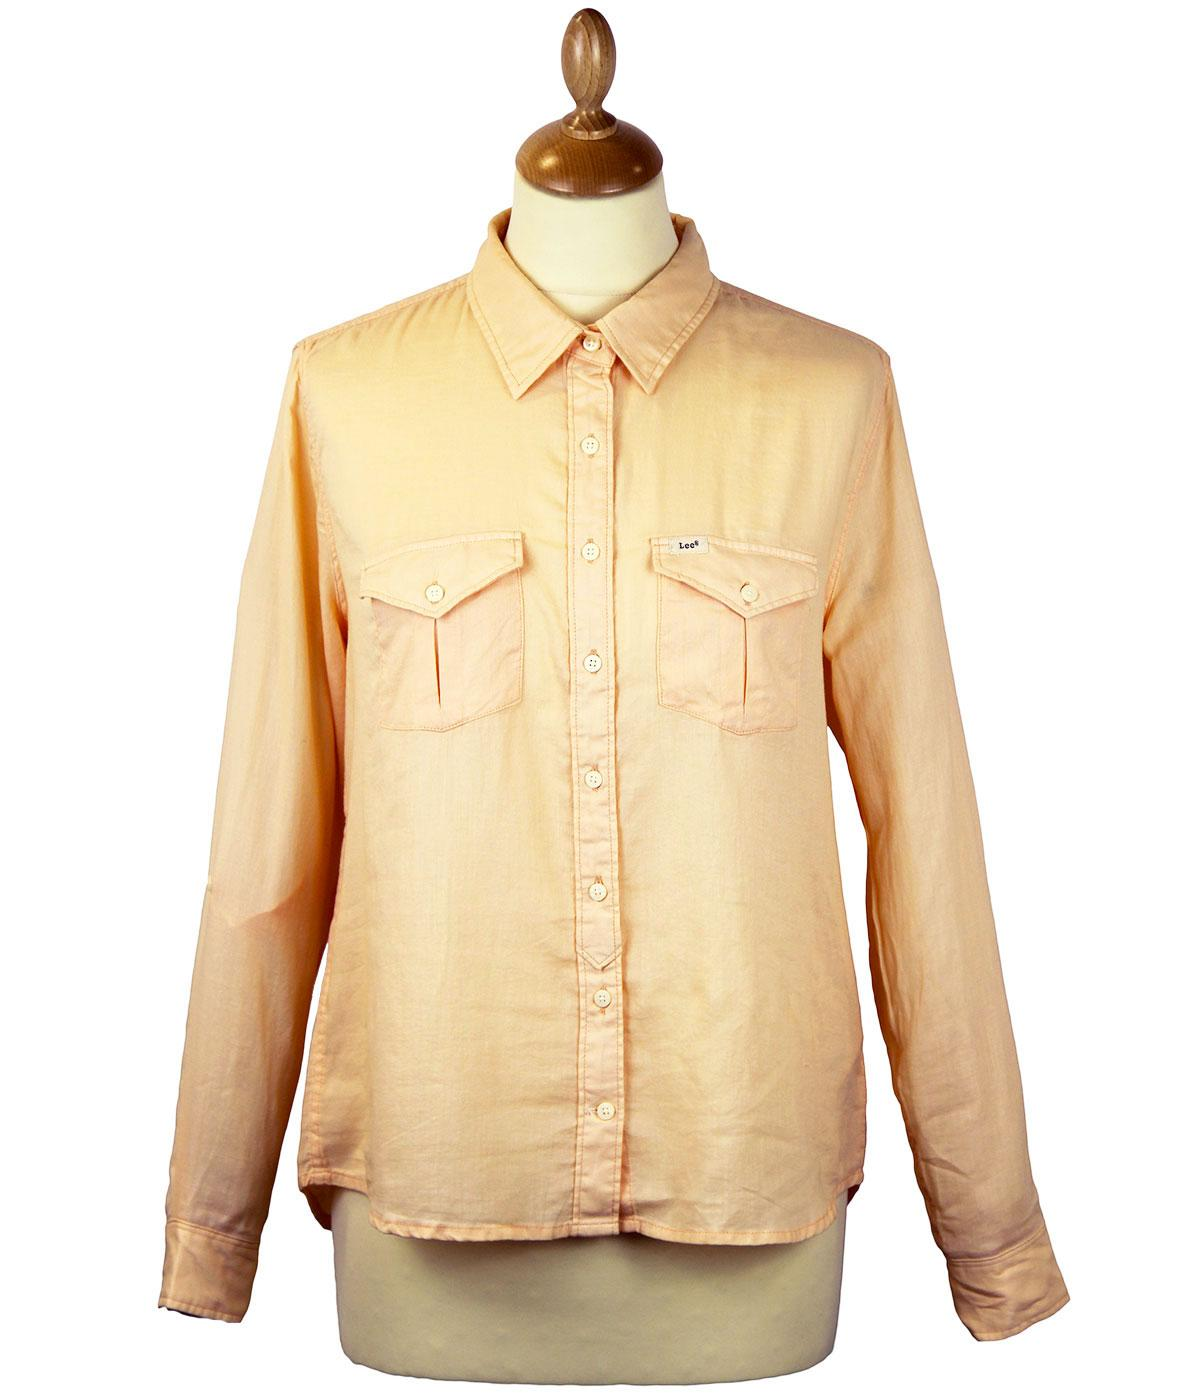 LEE Retro 70s Double Pocket Western Slouchy Shirt